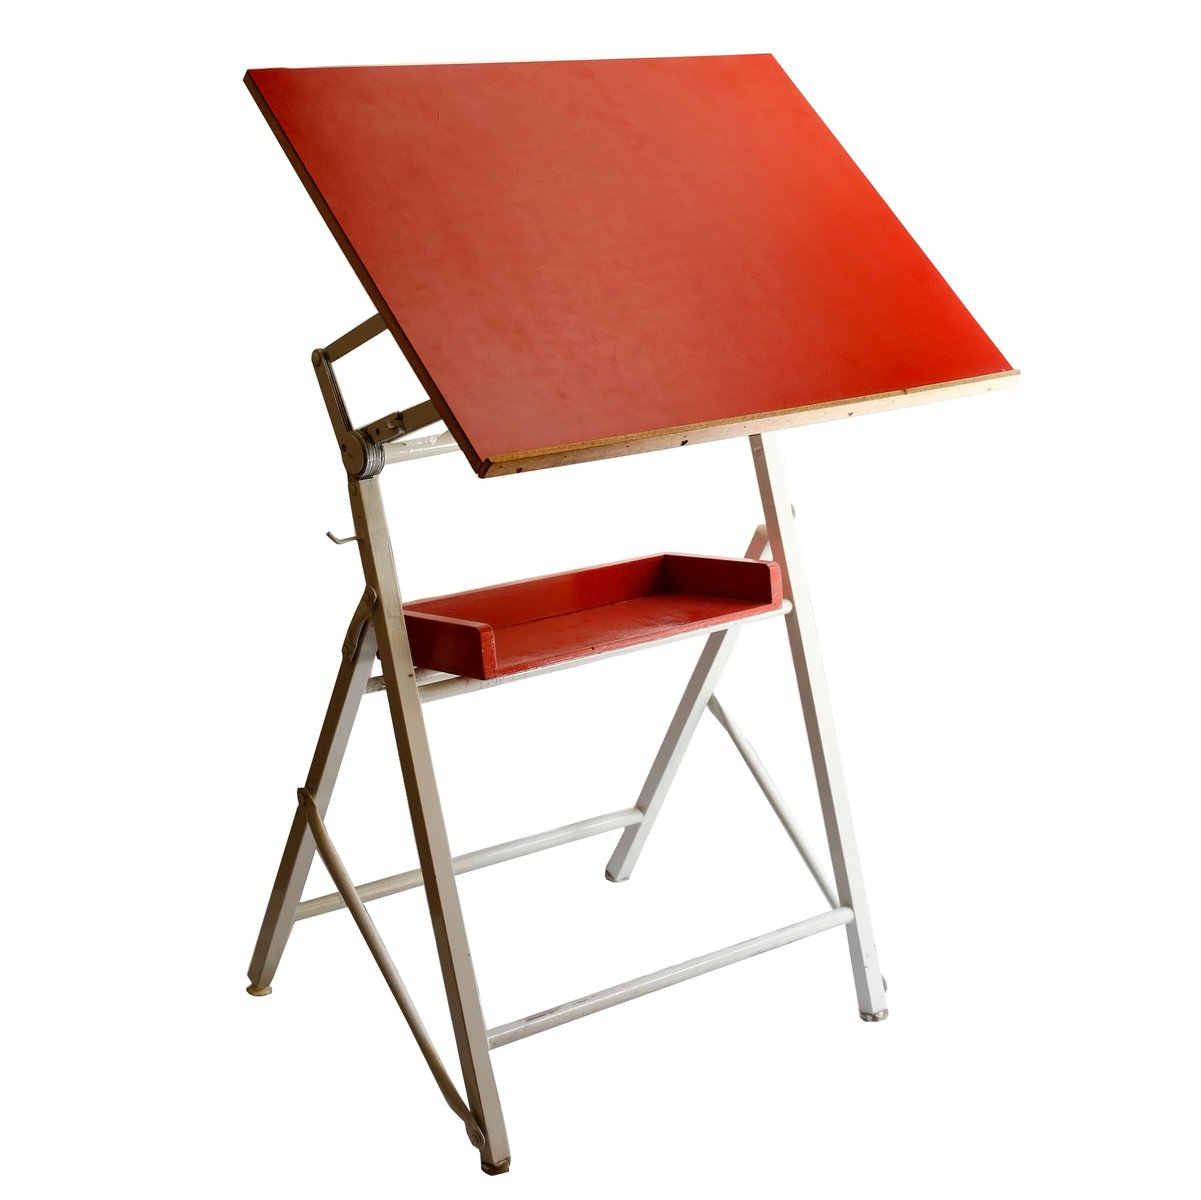 drafting table chairs shampoo for sale french drawing and chair 1970s at pamono